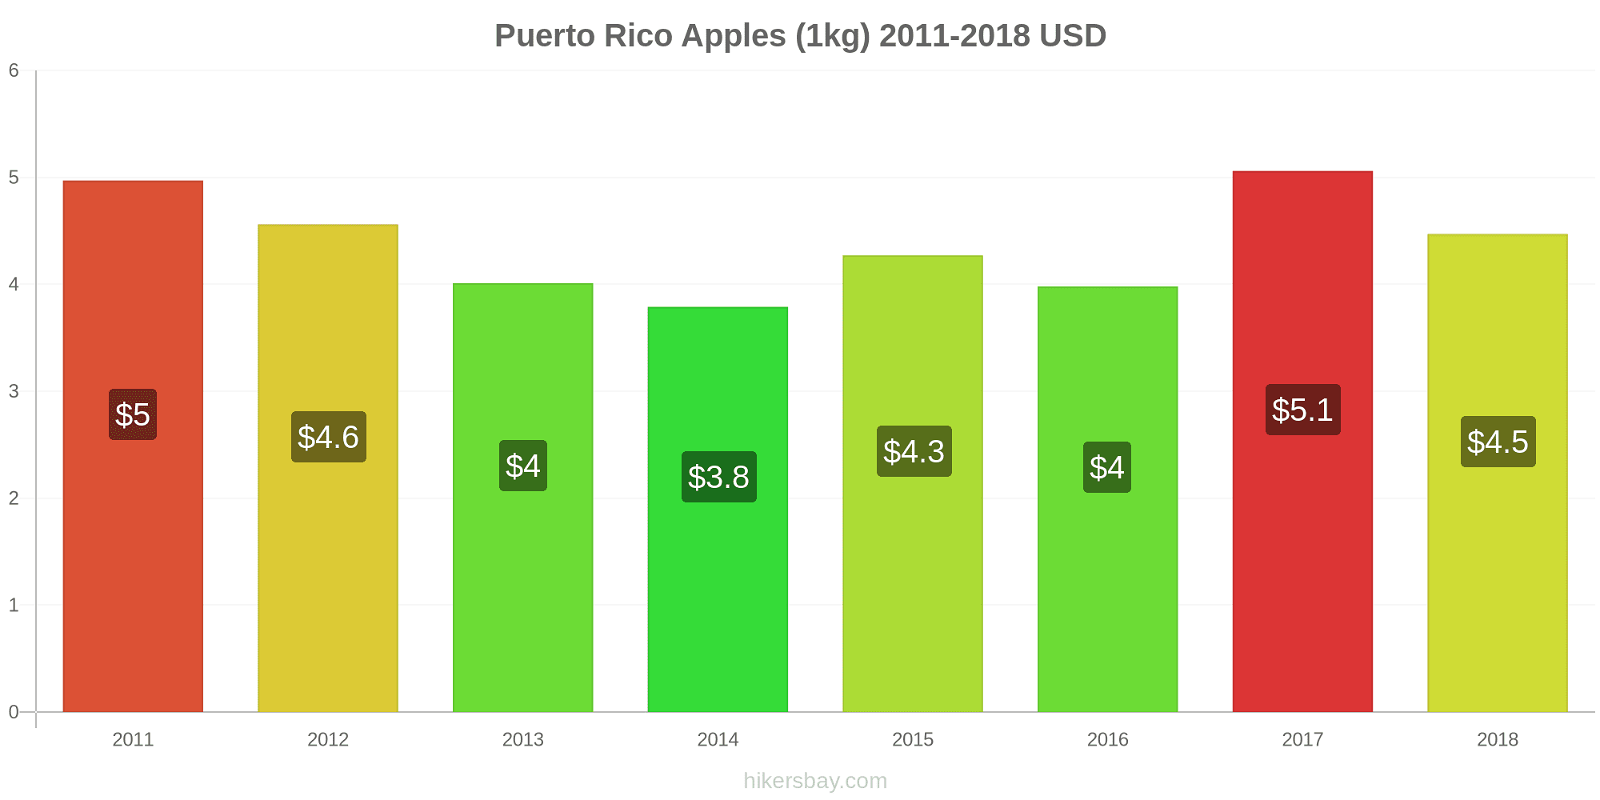 Puerto Rico price changes Apples (1kg) hikersbay.com